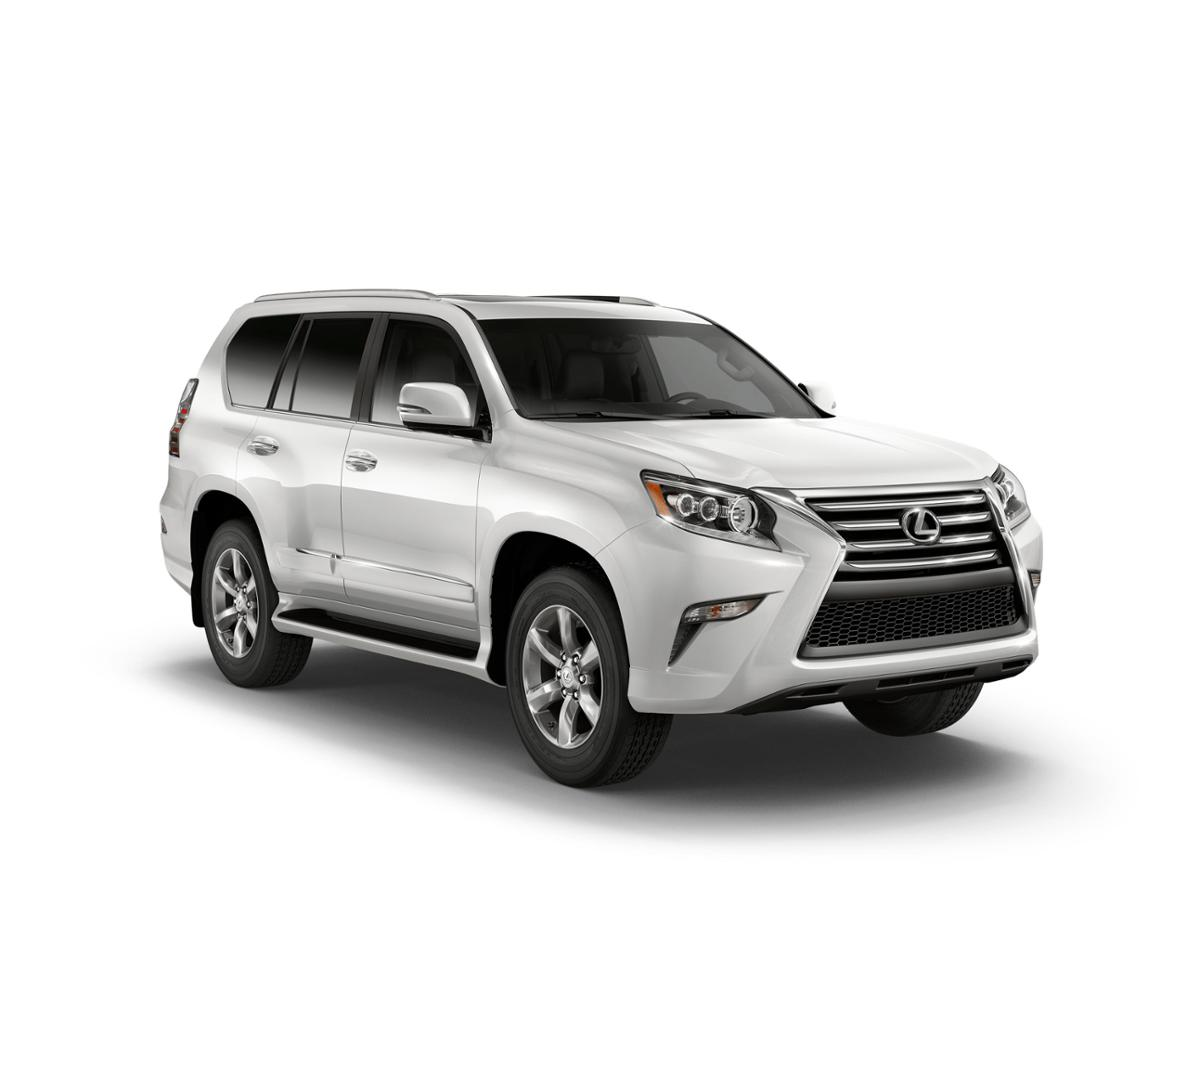 2017 Lexus GX 460 Vehicle Photo in Santa Barbara, CA 93105